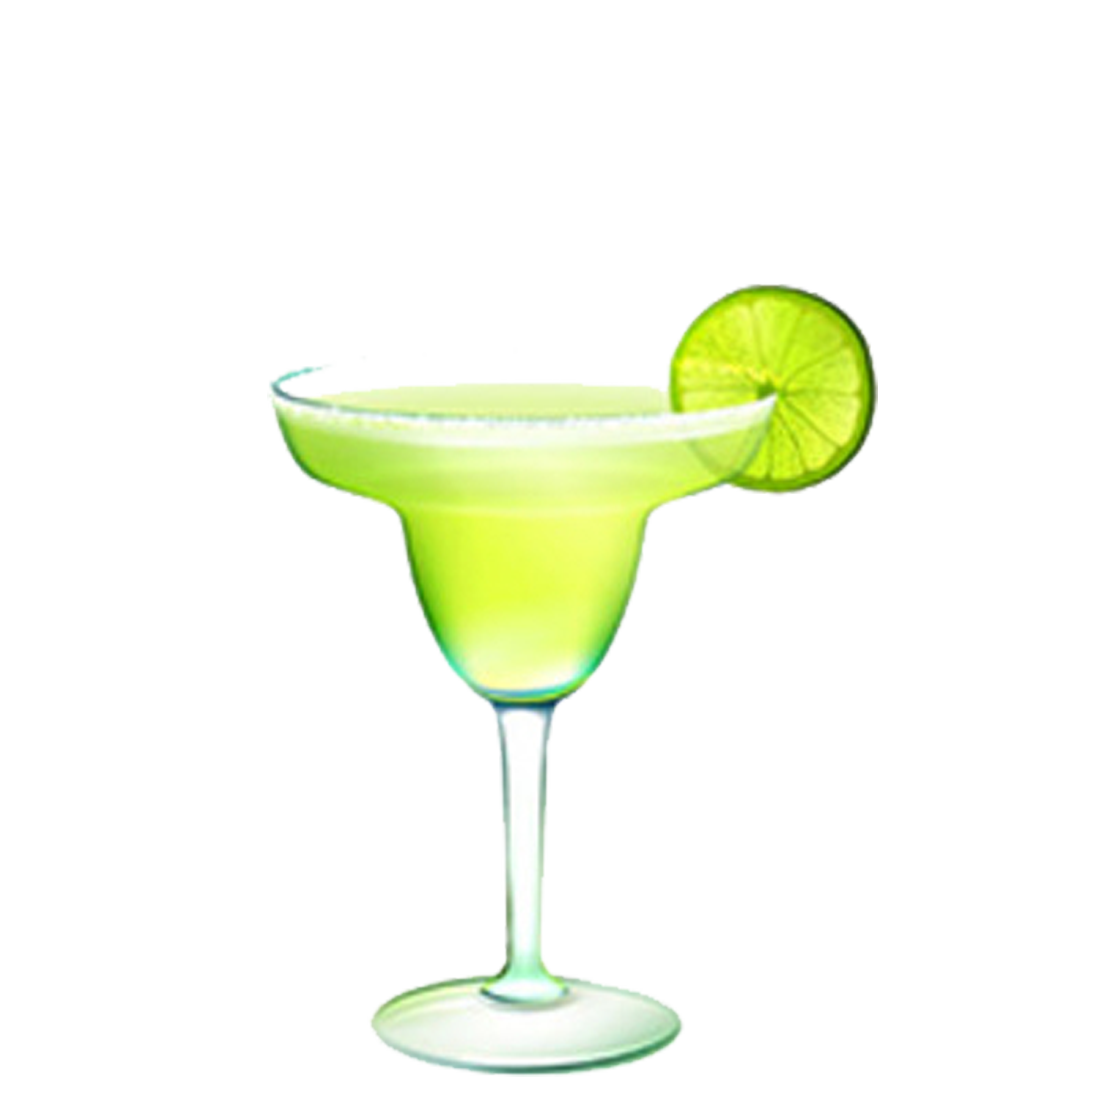 image transparent stock Tequila free on dumielauxepices. Margarita clipart.